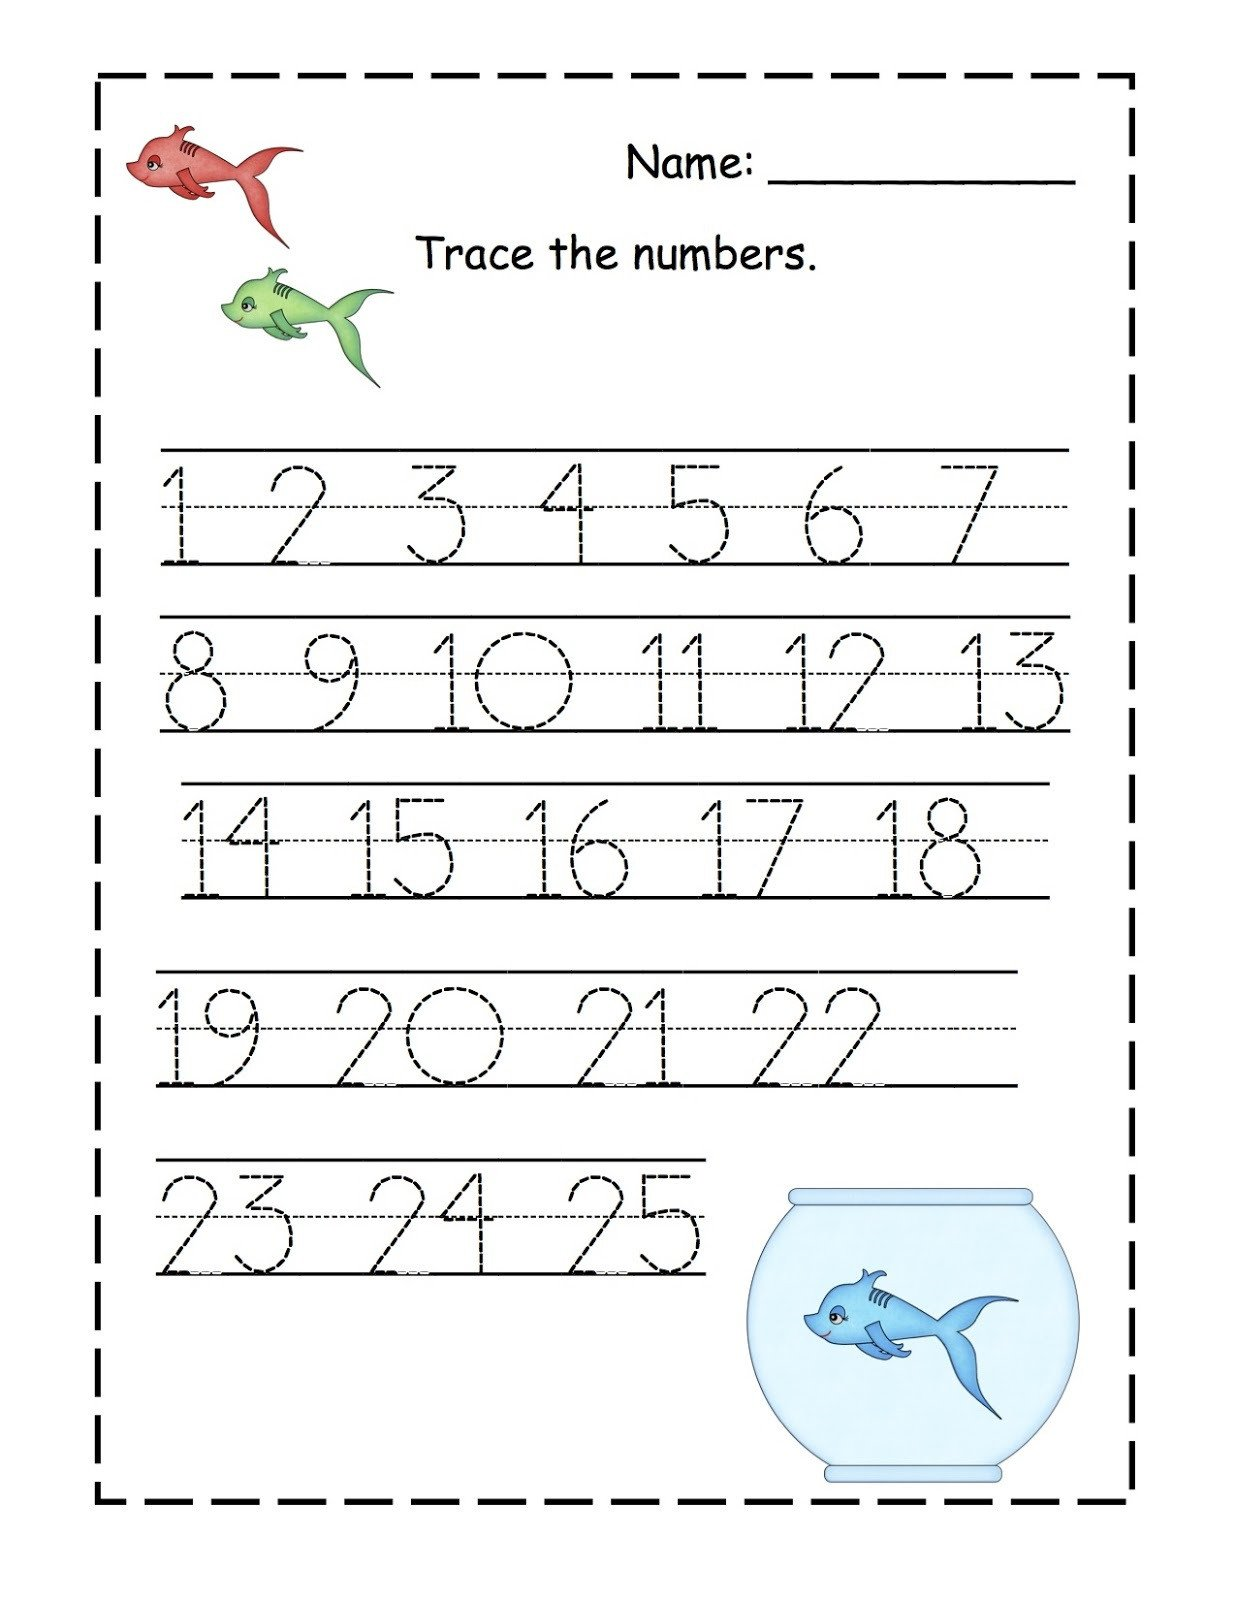 Tracing Number Worksheets 1 20 Trace Number 1 20 Worksheets